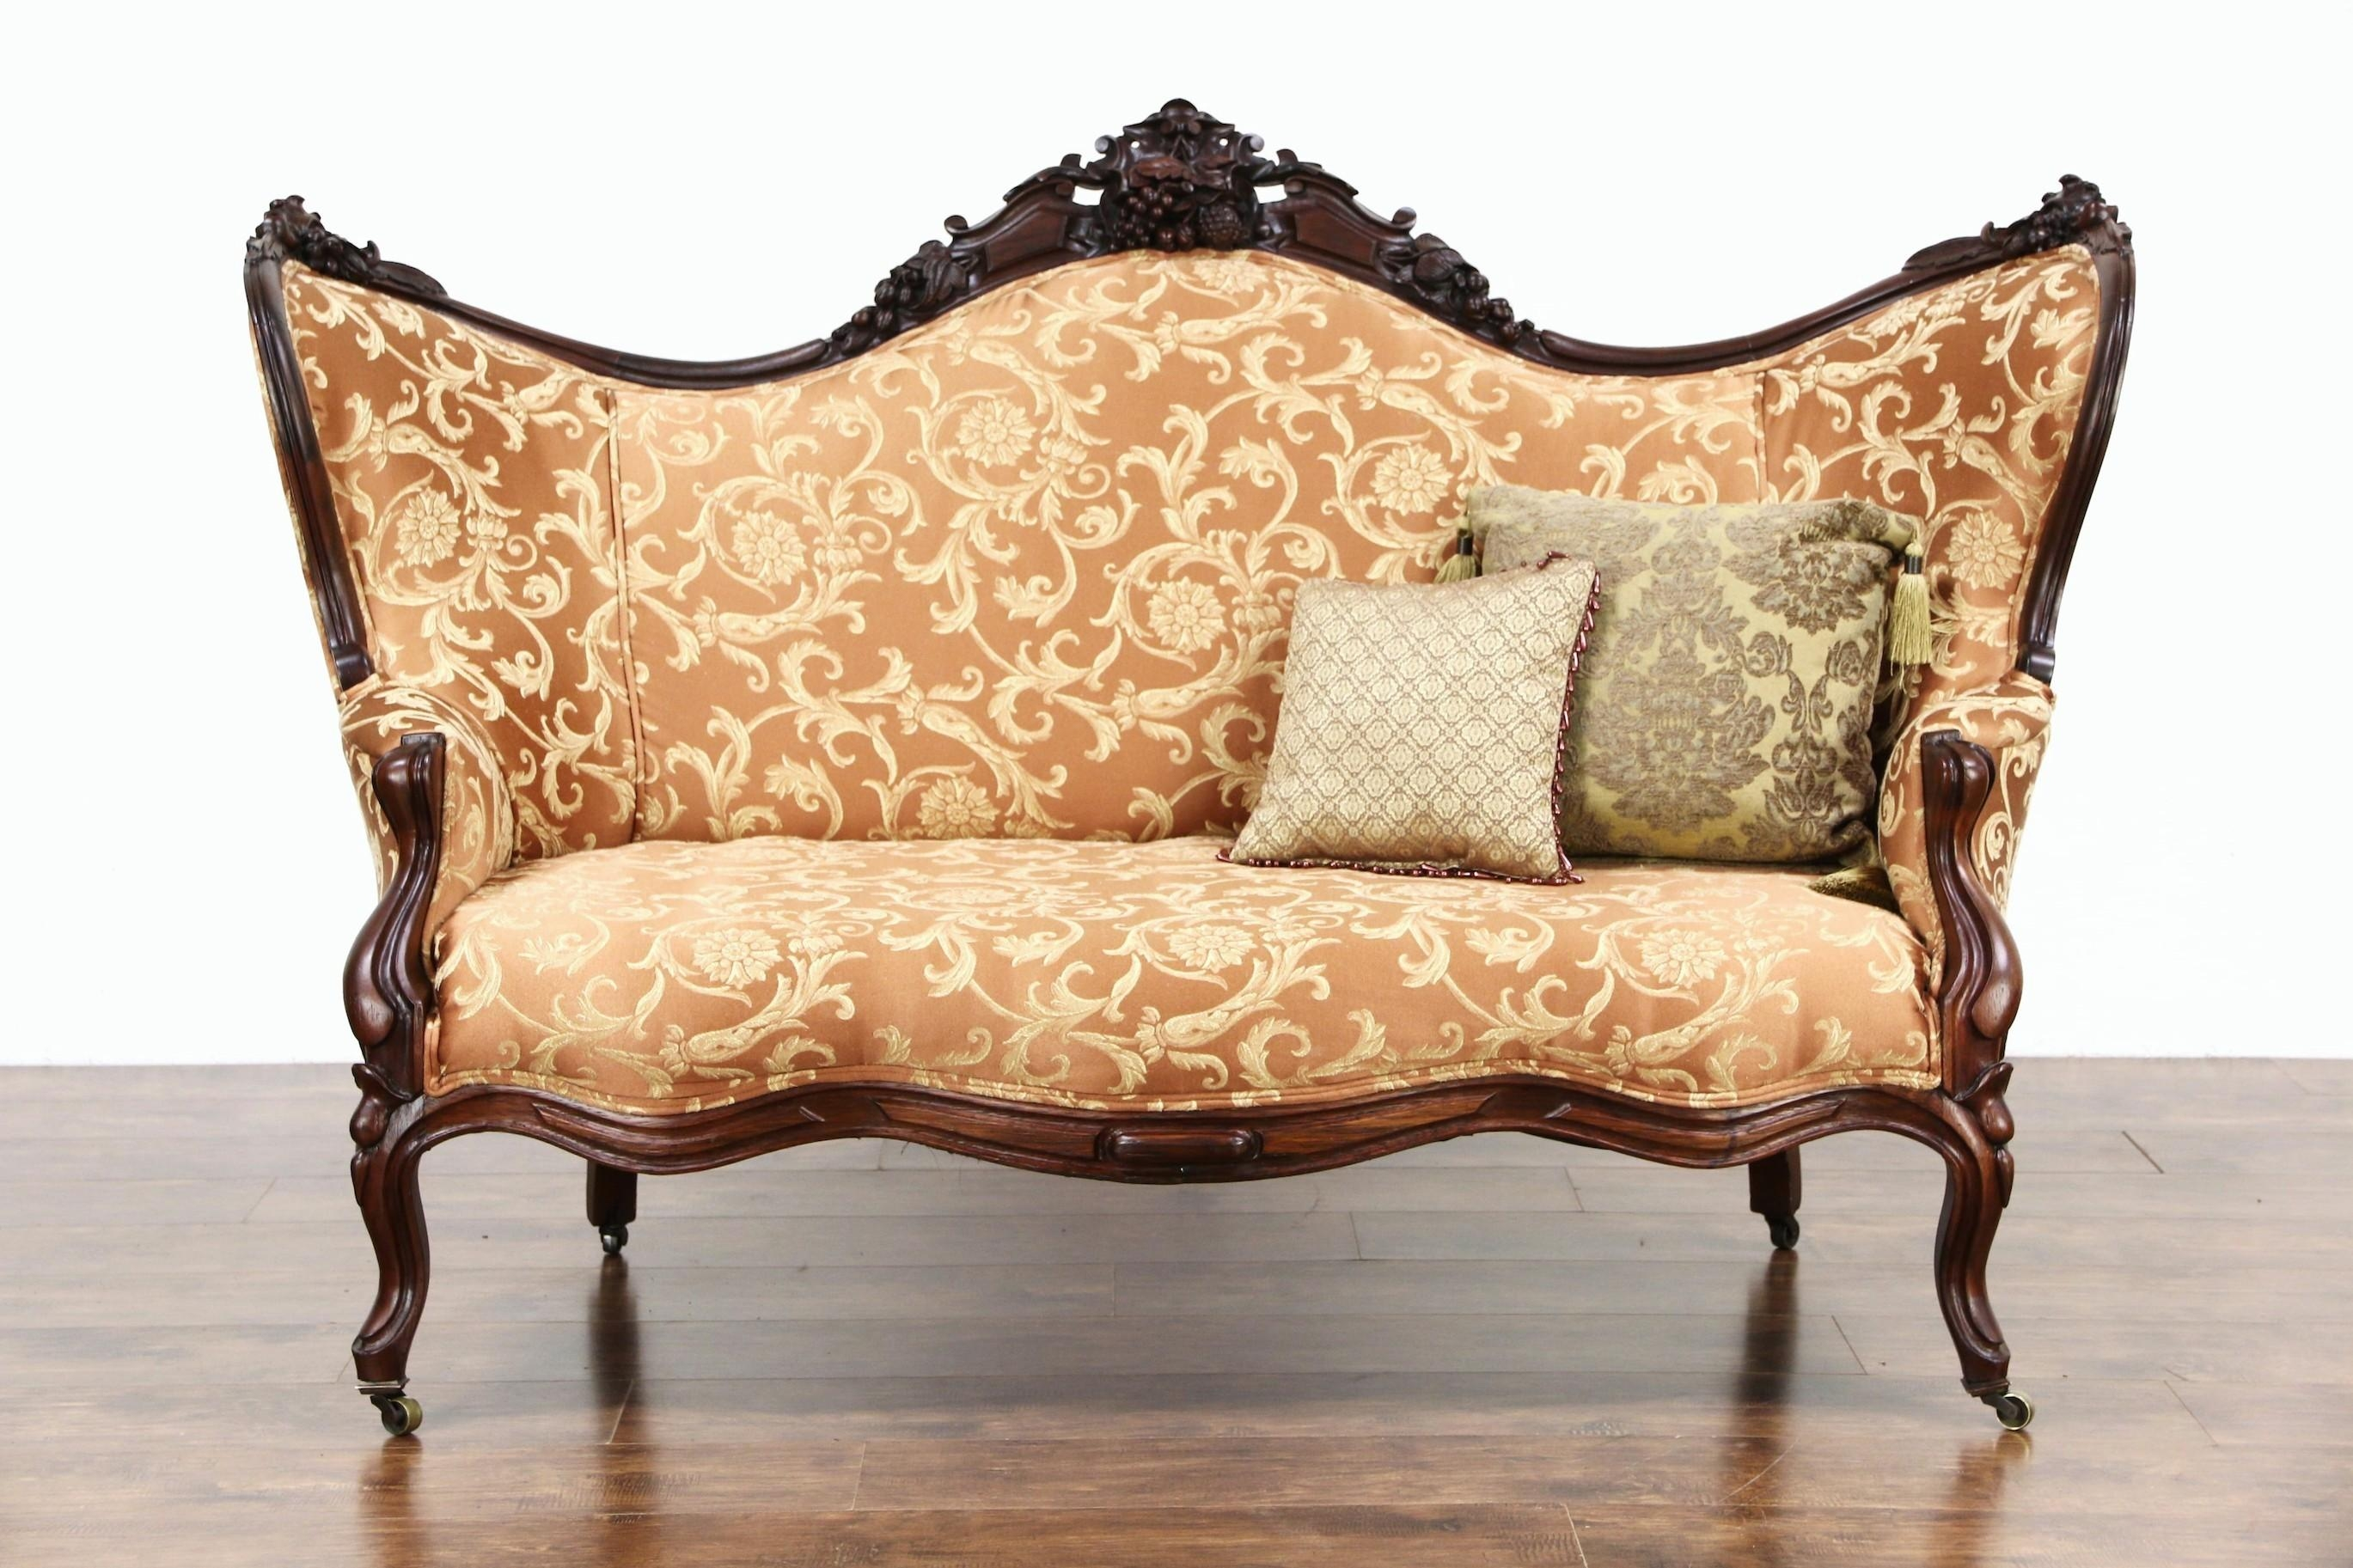 sofa sell couches instappraisal antique couch appraisal